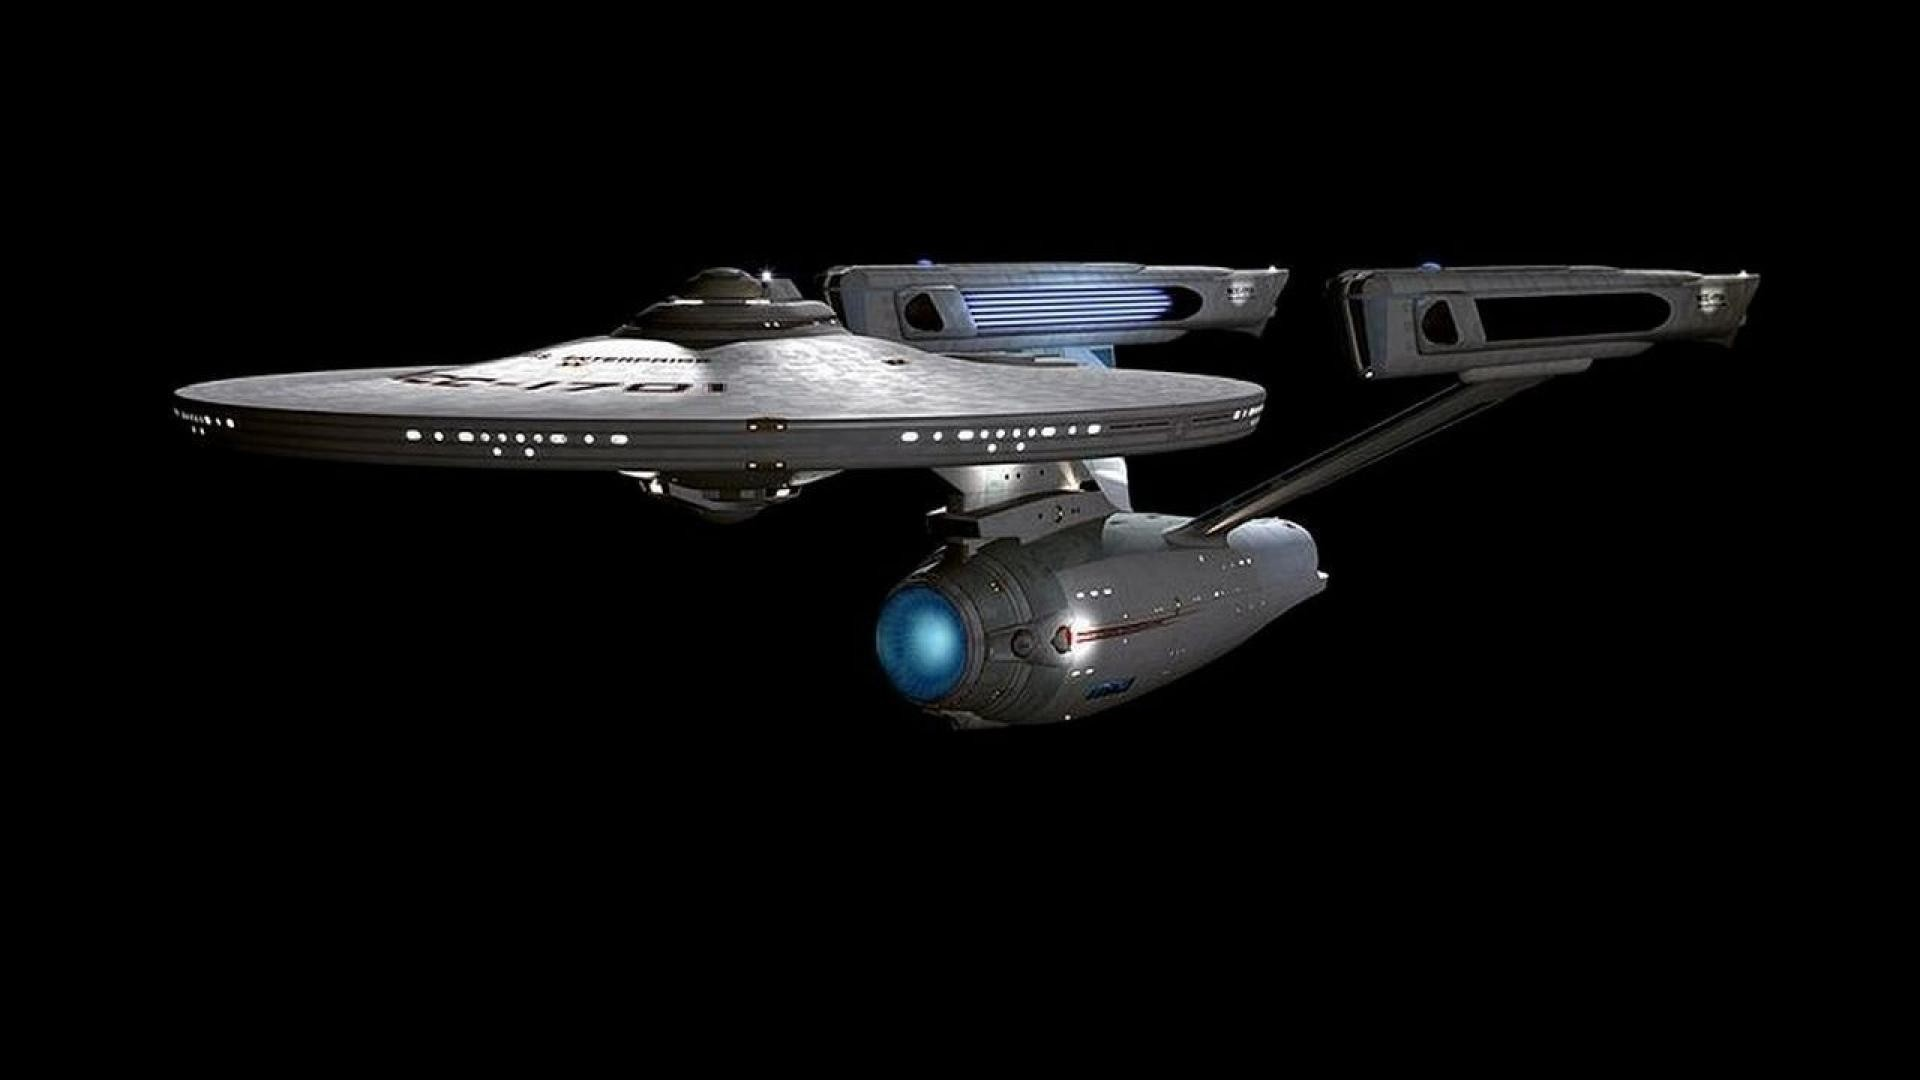 1920x1080 Star trek spaceships uss enterprise wallpaper